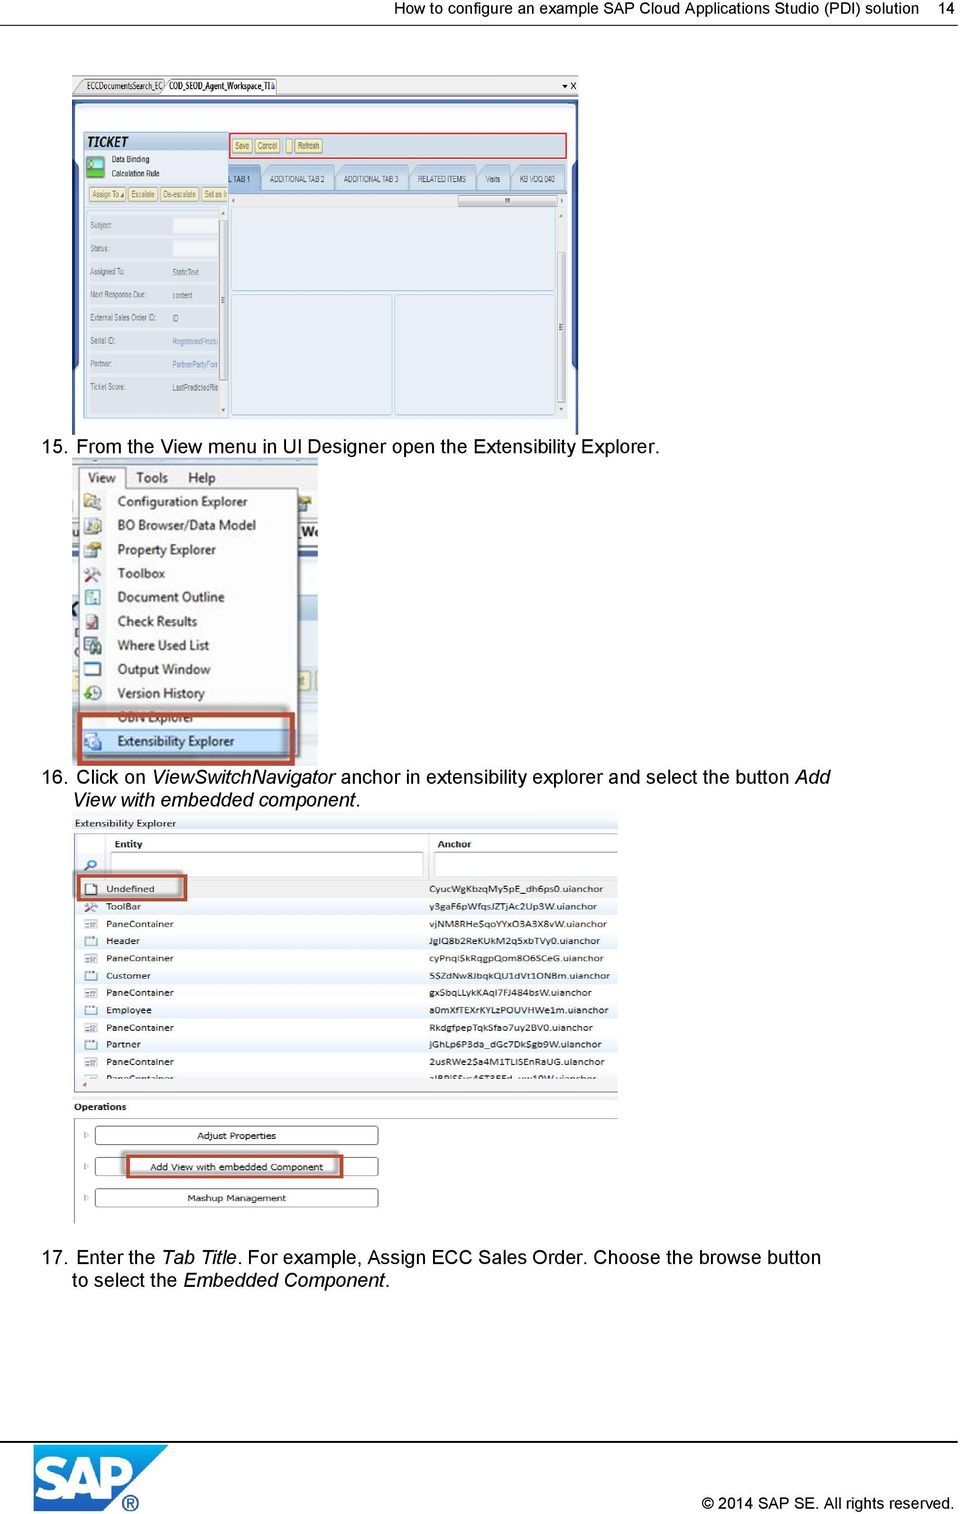 Click on ViewSwitchNavigator anchor in extensibility explorer and select the button Add View with